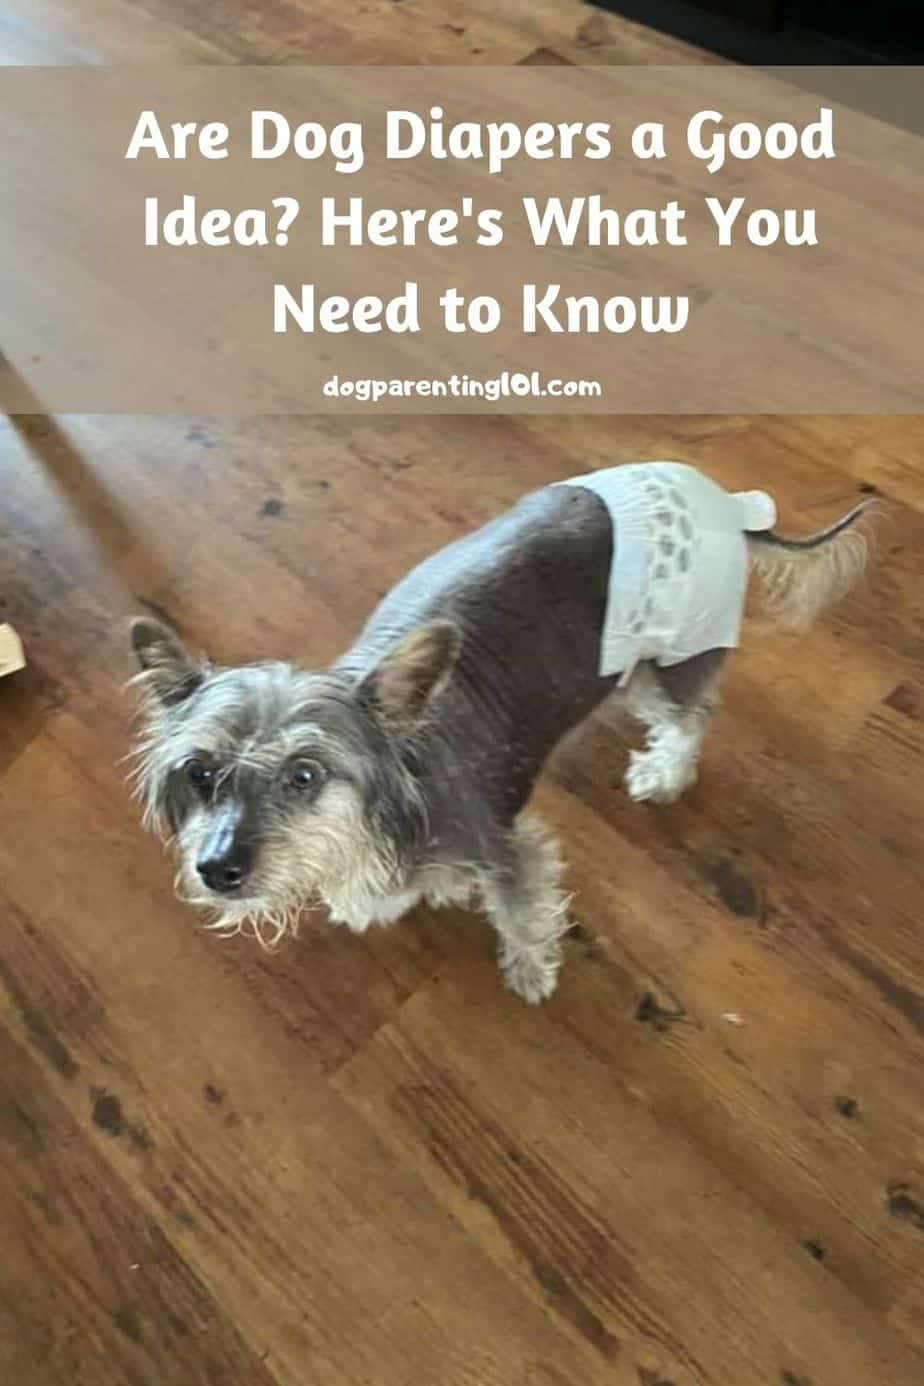 Are Dog Diapers a Good Idea_ Here is What You Need to Know